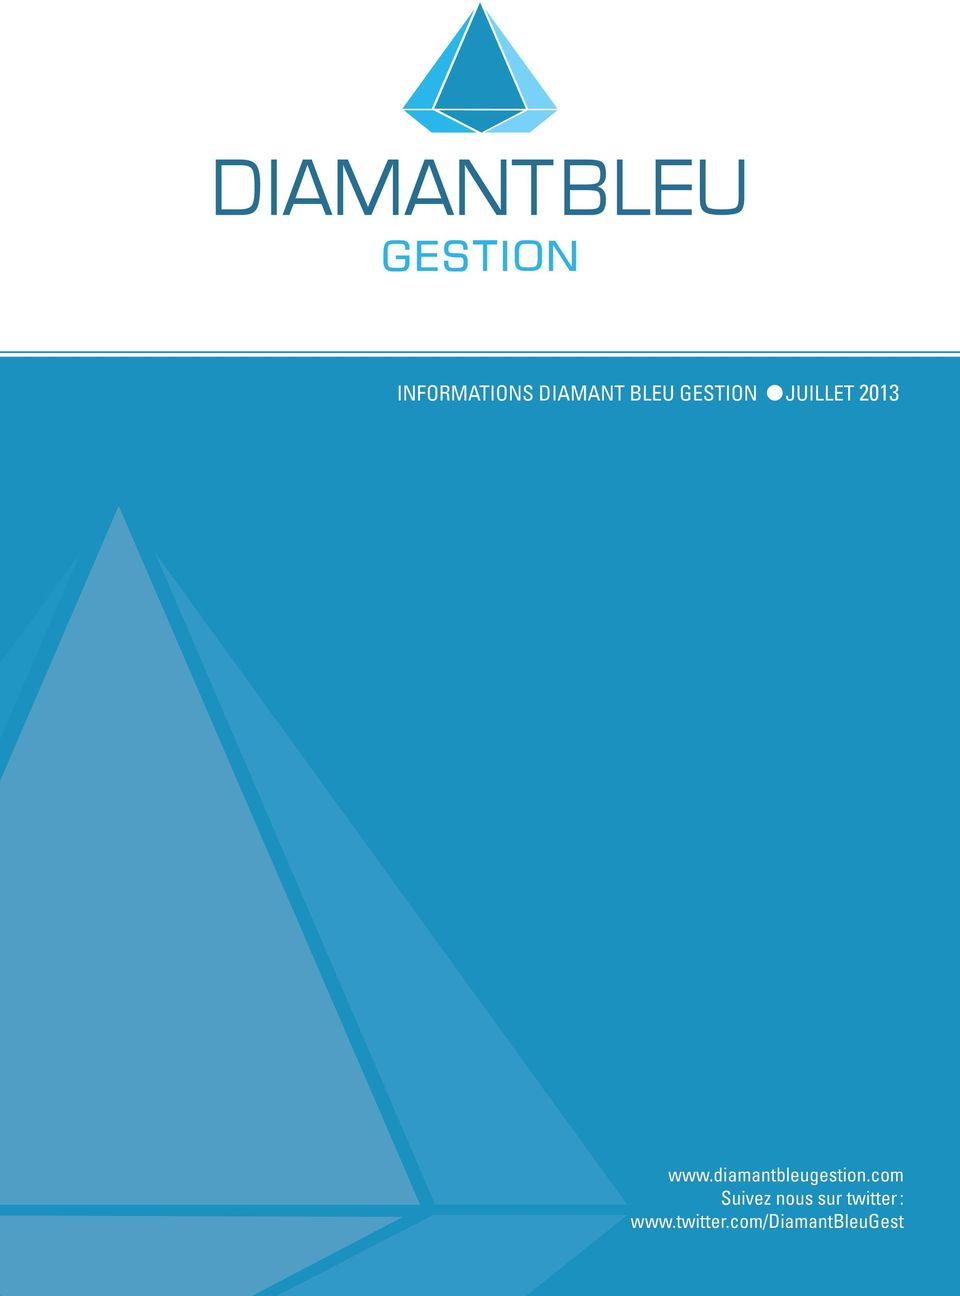 diamantbleugestion.